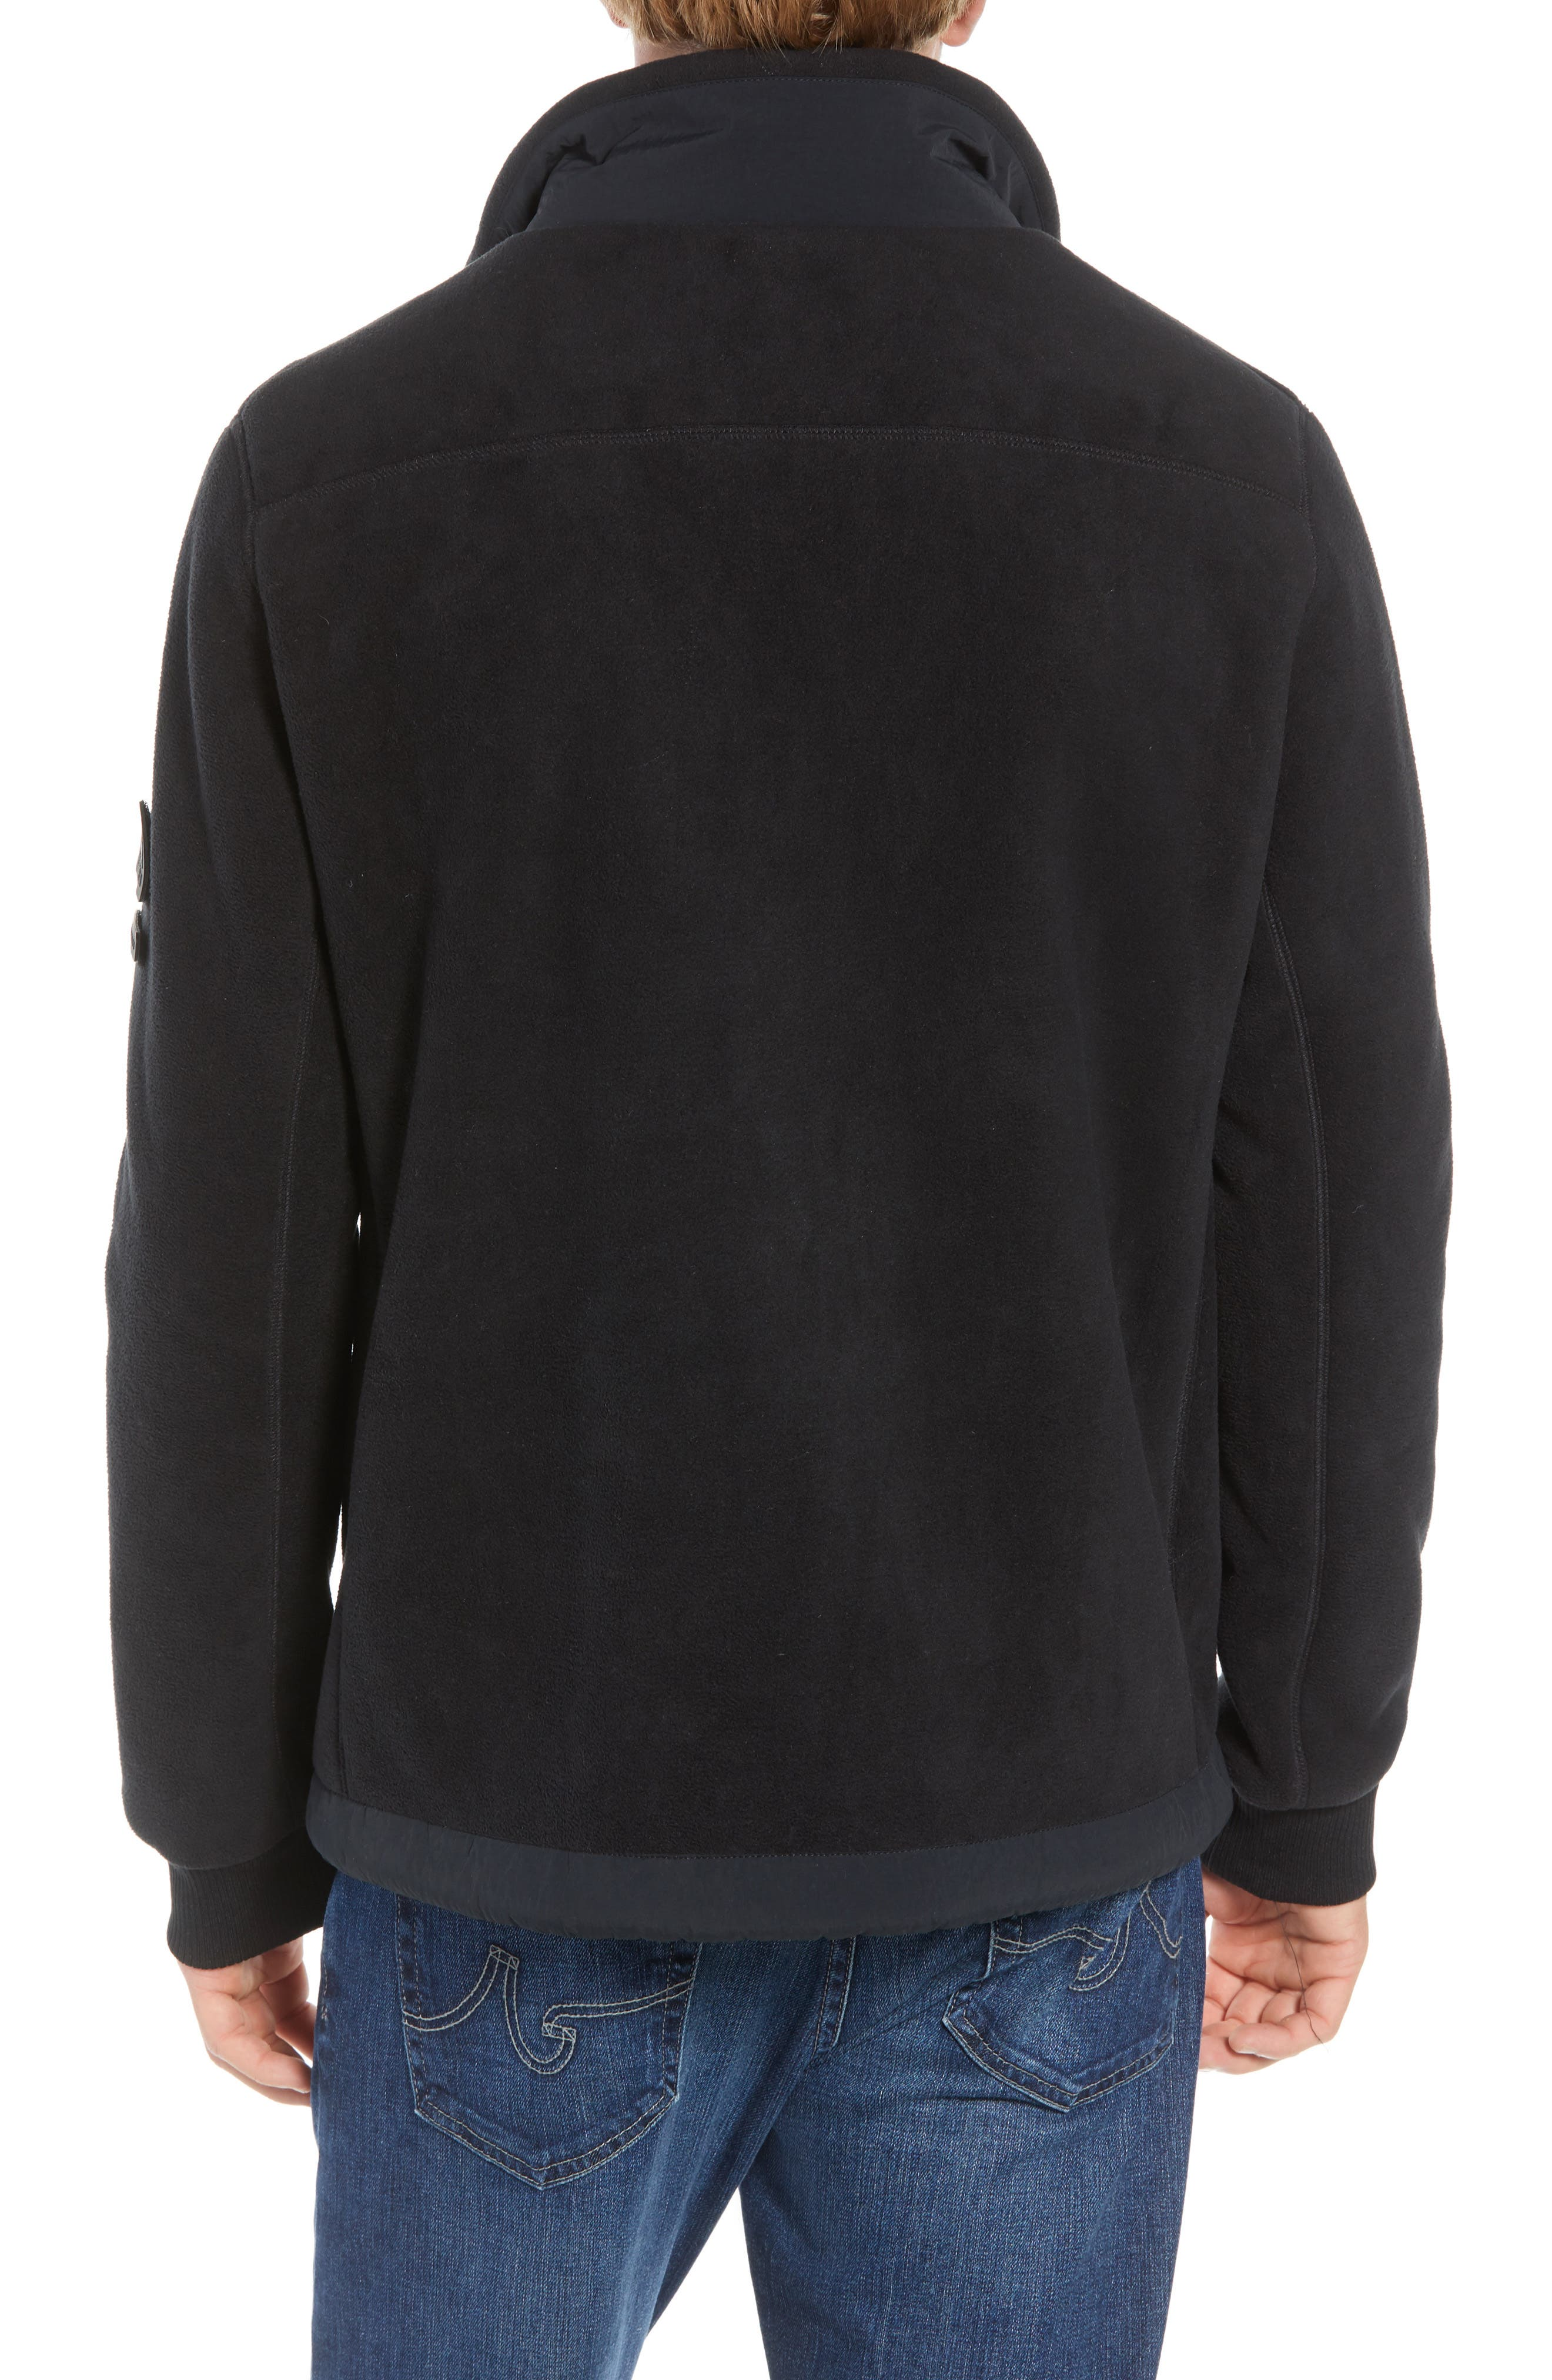 Schoening Zip Fleece Jacket,                             Alternate thumbnail 2, color,                             BLACK